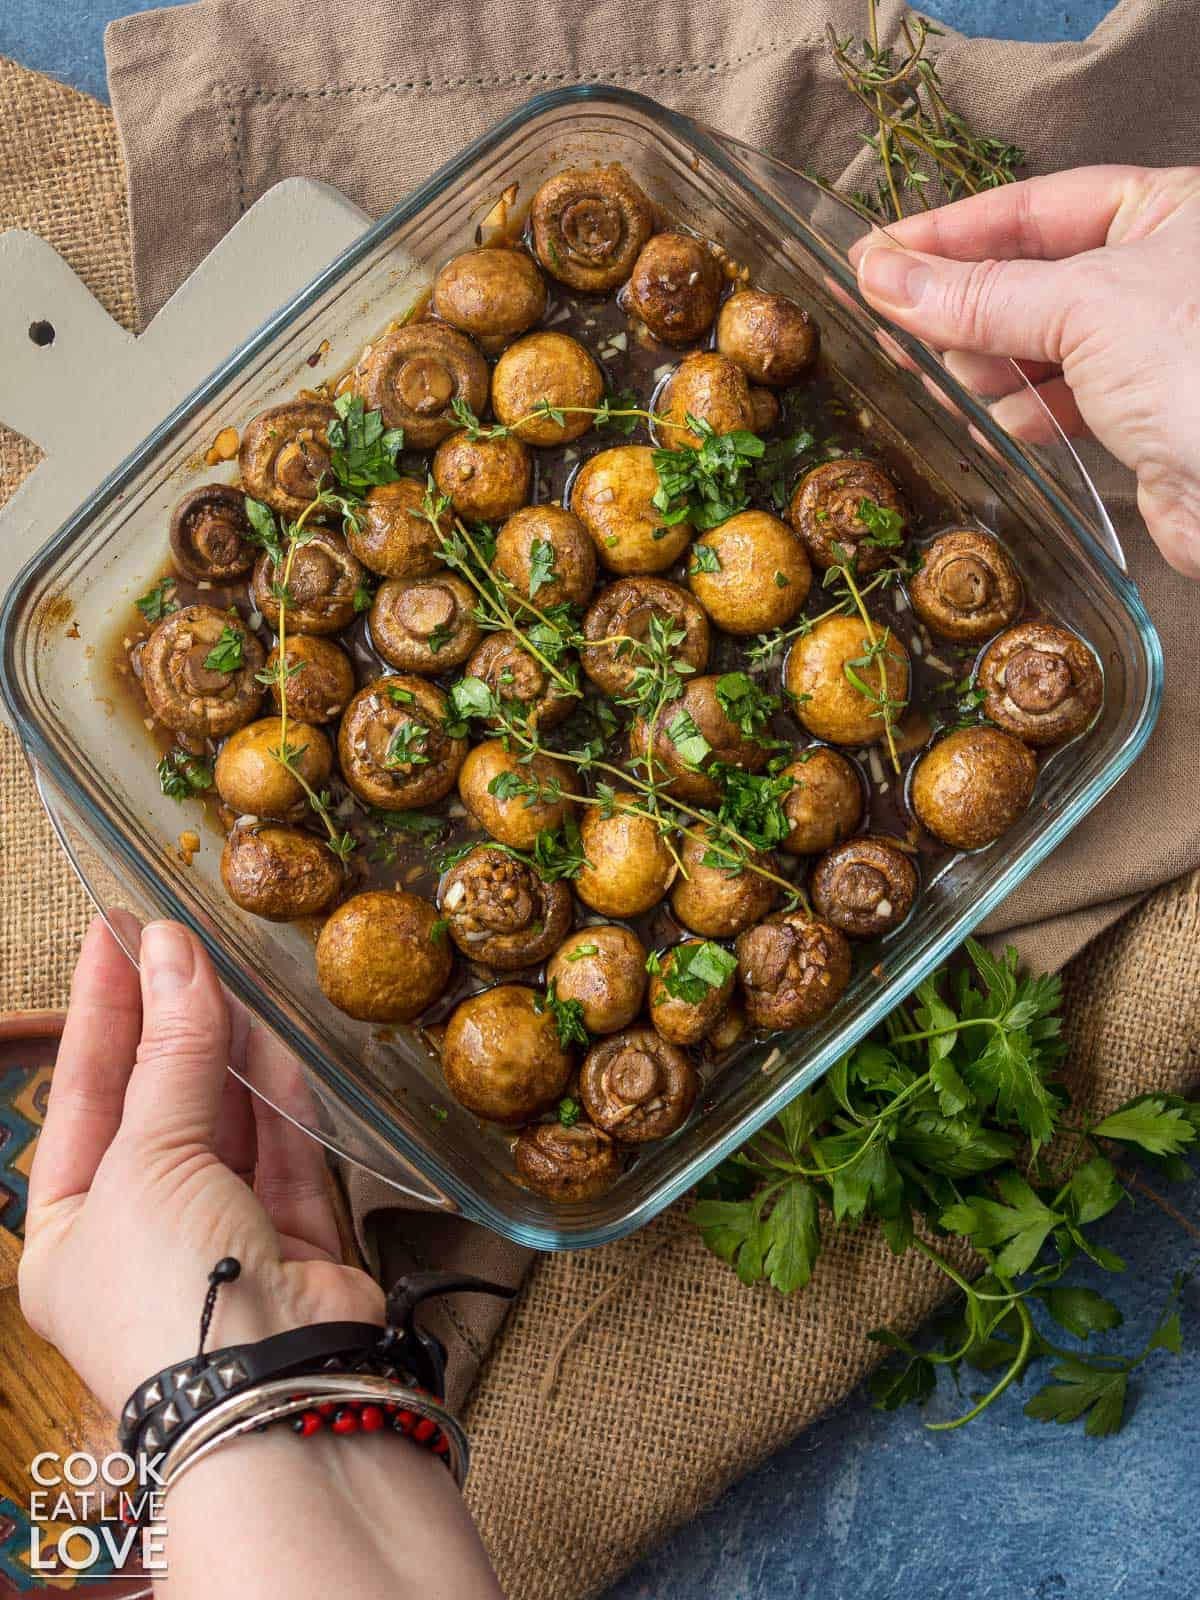 Hands setting dish of oven roasted mushrooms on the table